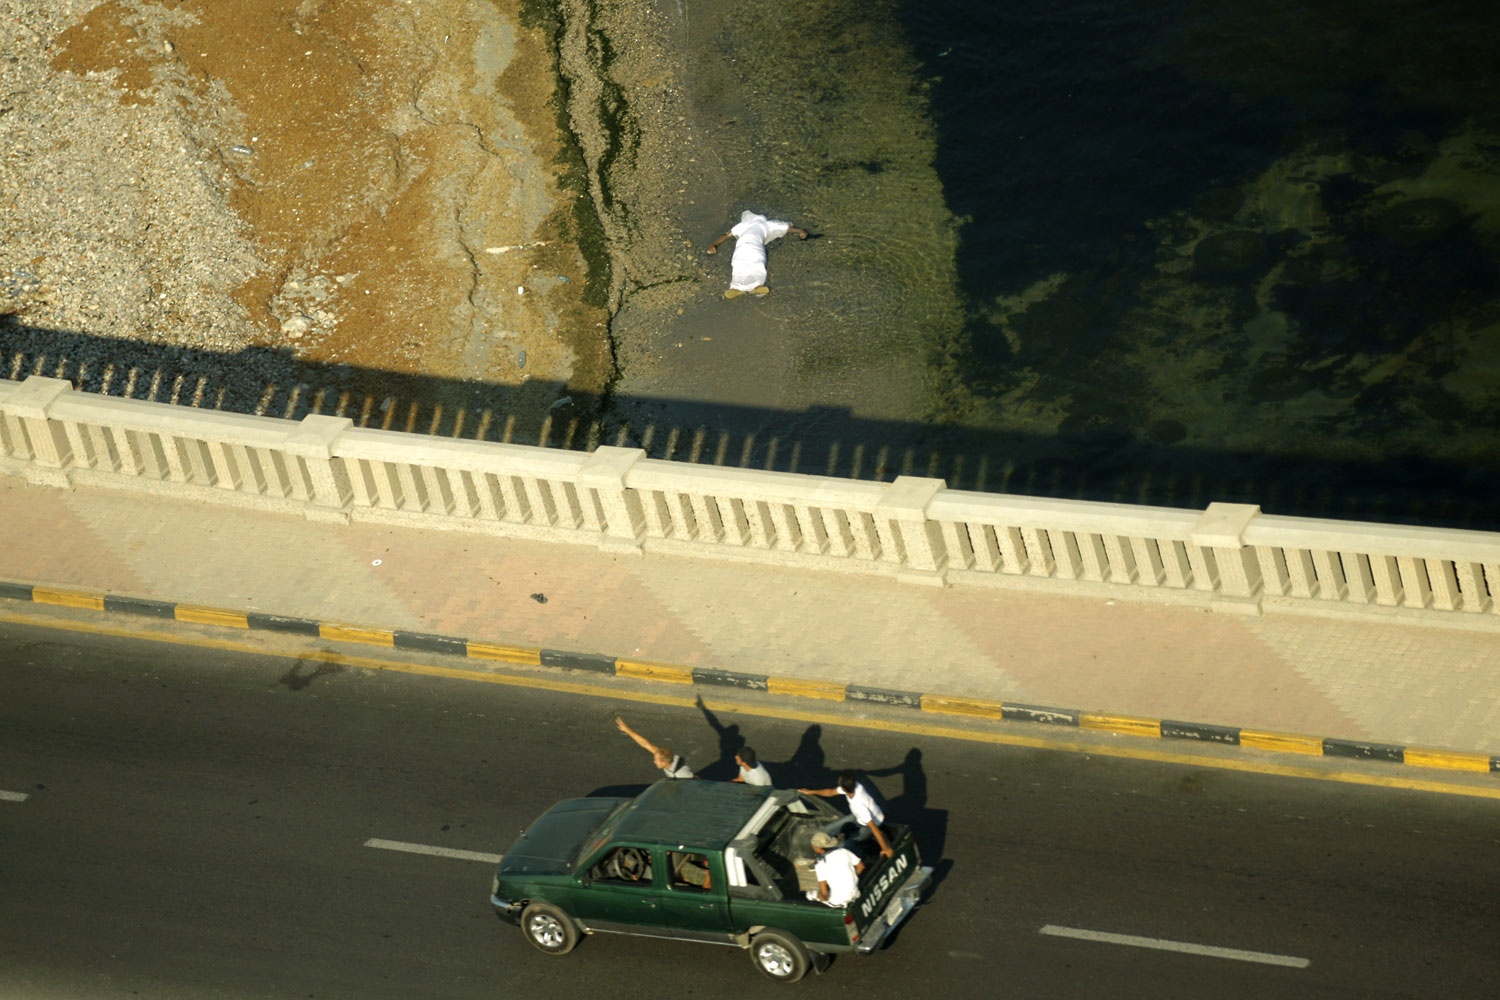 August 24, 2011. Libyan rebels patrol an area in Tripoli as a dead body floats in the sea on Fighting raged near Moamer Kadhafi's Bab al-Aziziya compound a day after it was captured by rebels, as loyalist troops staged a counteroffensive.